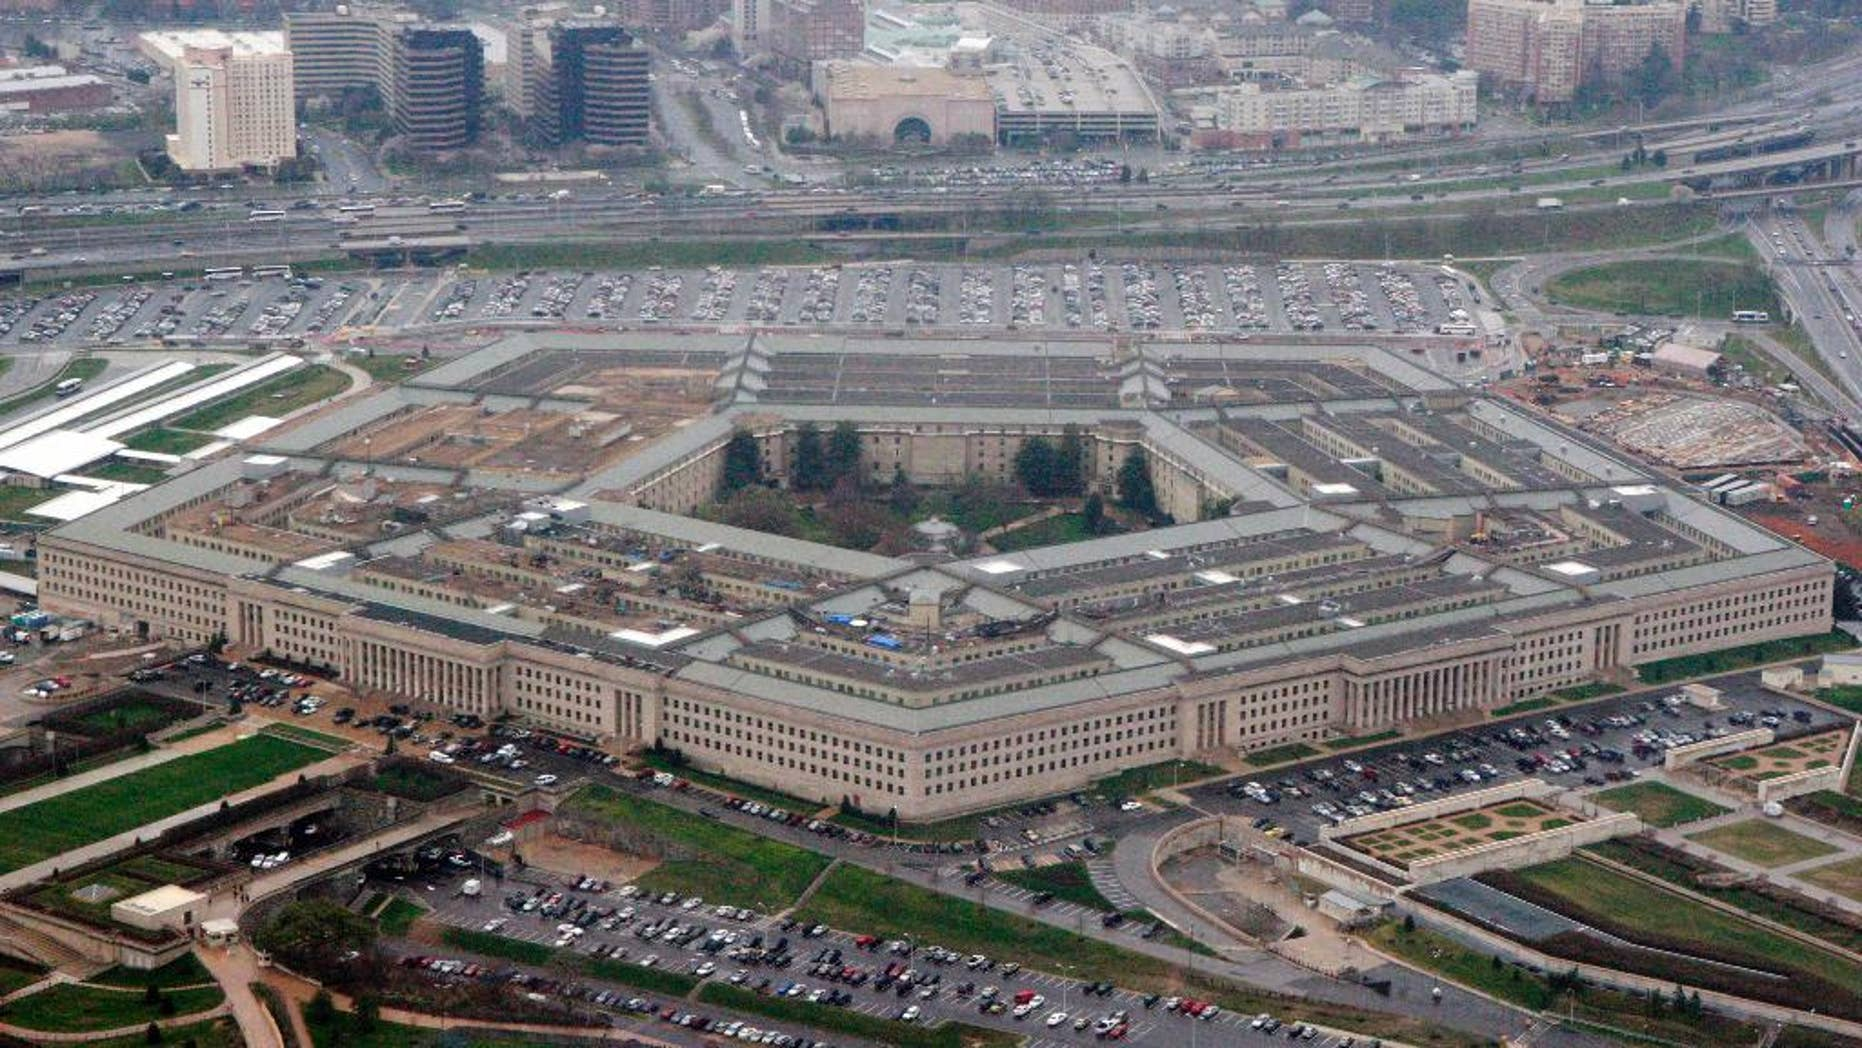 Pentagon gets suspected ricin-laced packages, FBI analyzing